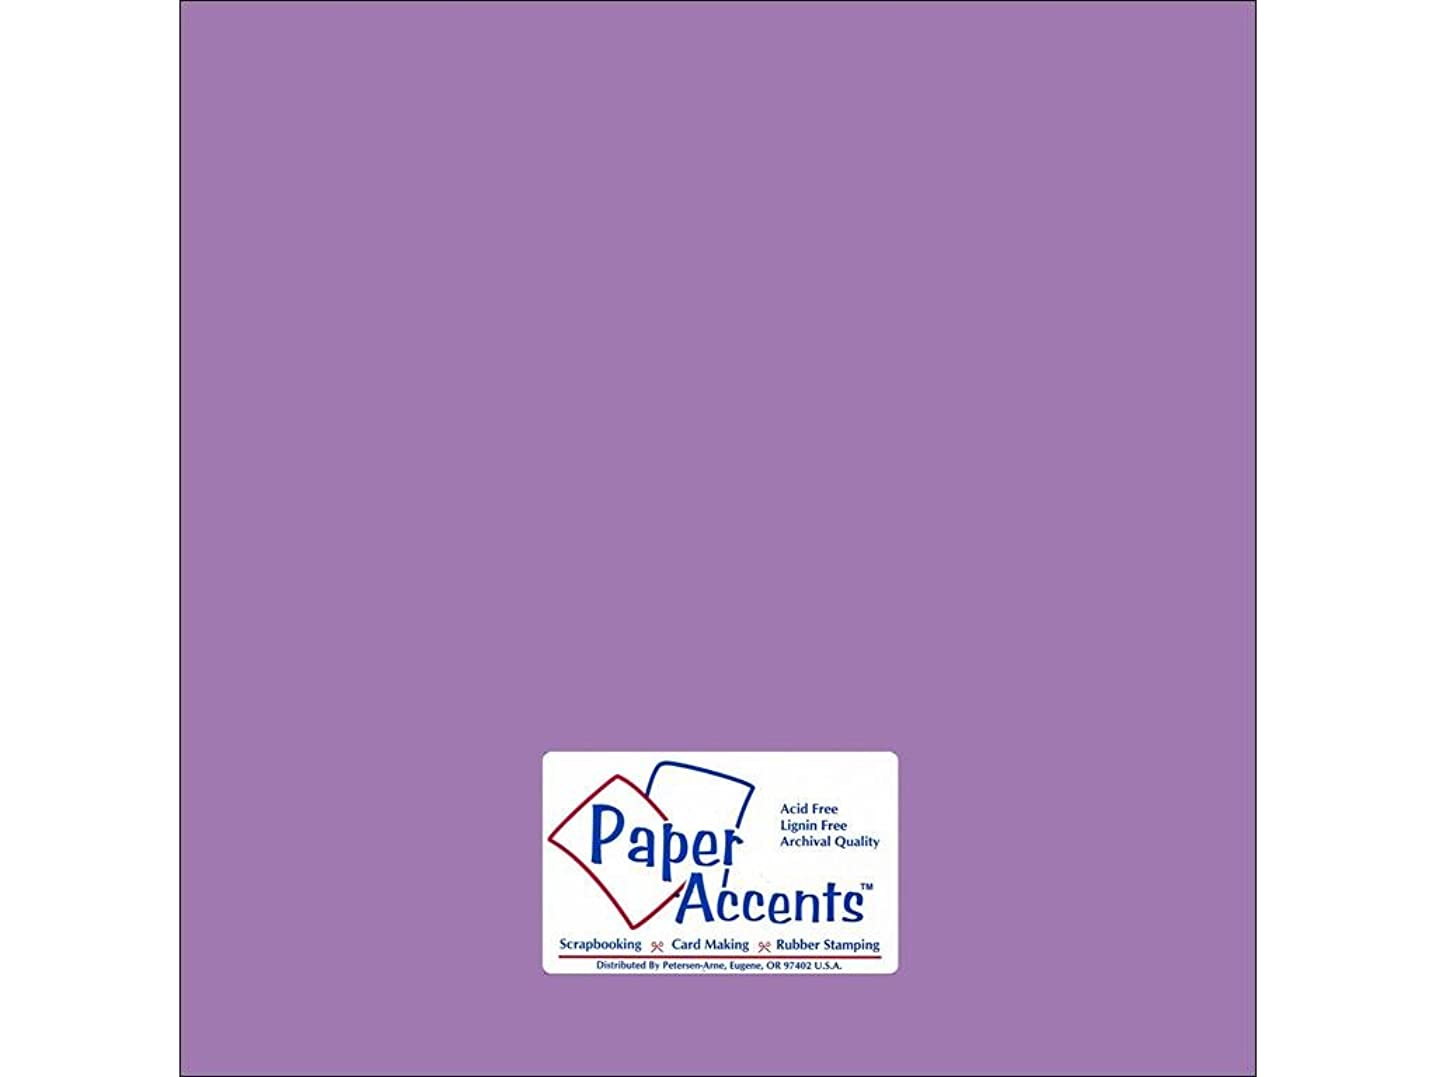 Accent Design Paper Accents Cdstk Smooth 12x12 74# Wild Pansy